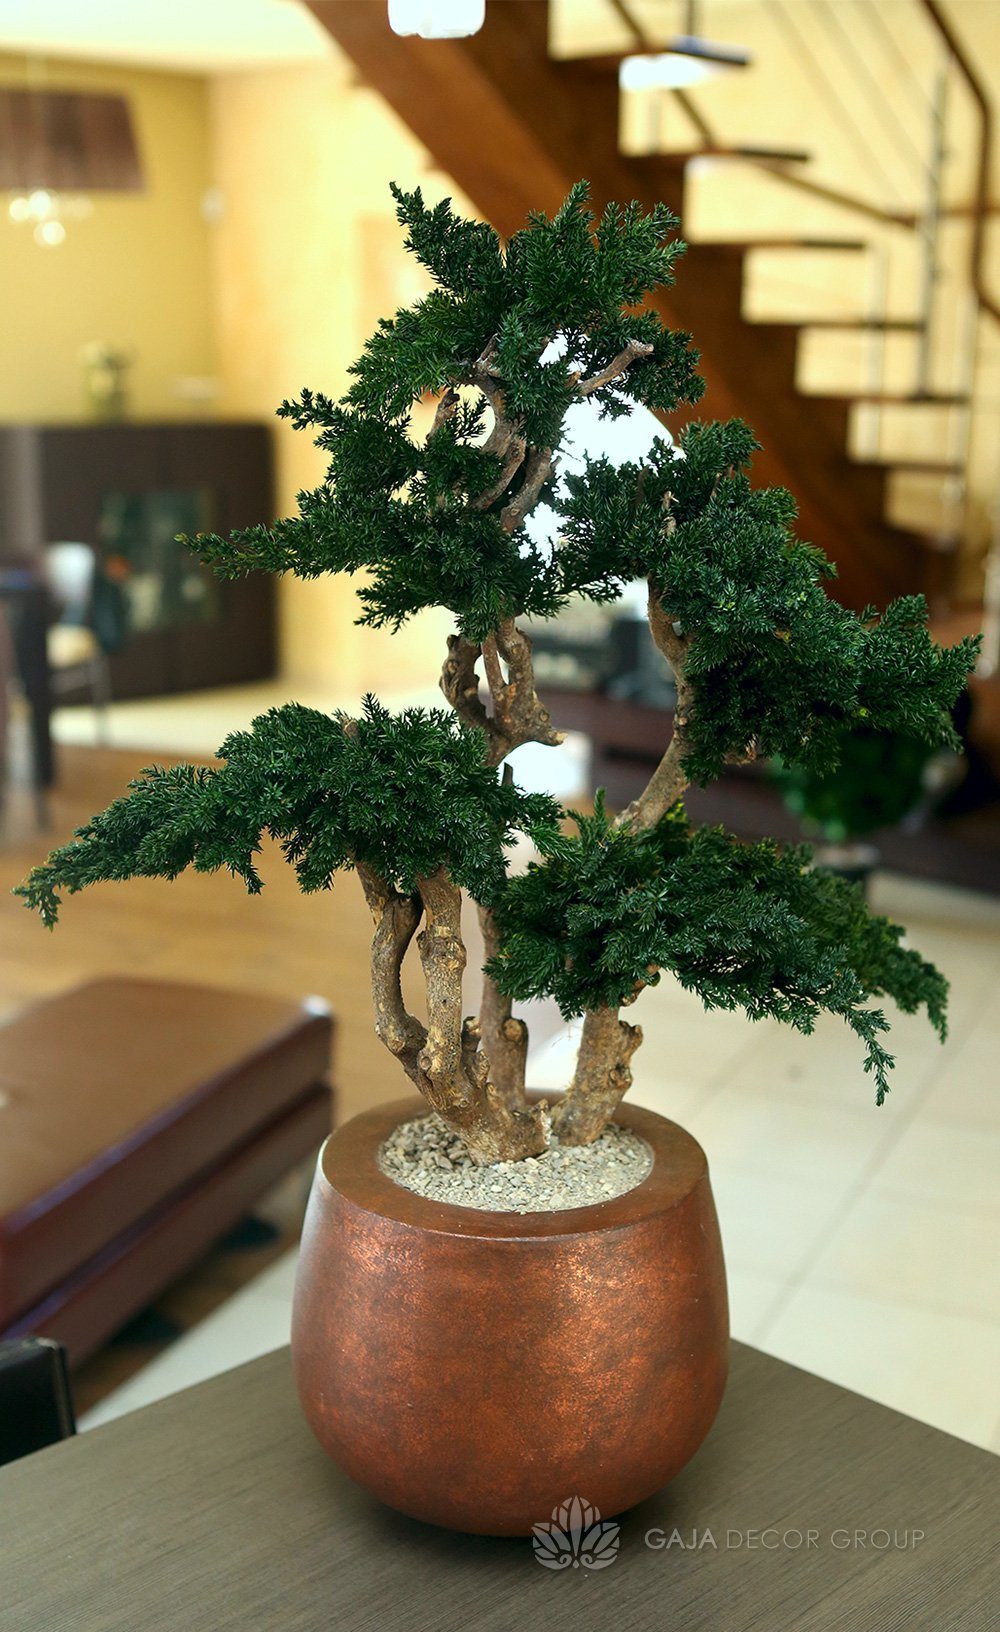 Indoor bonsai tree gaja decor group for Bonsai indoor